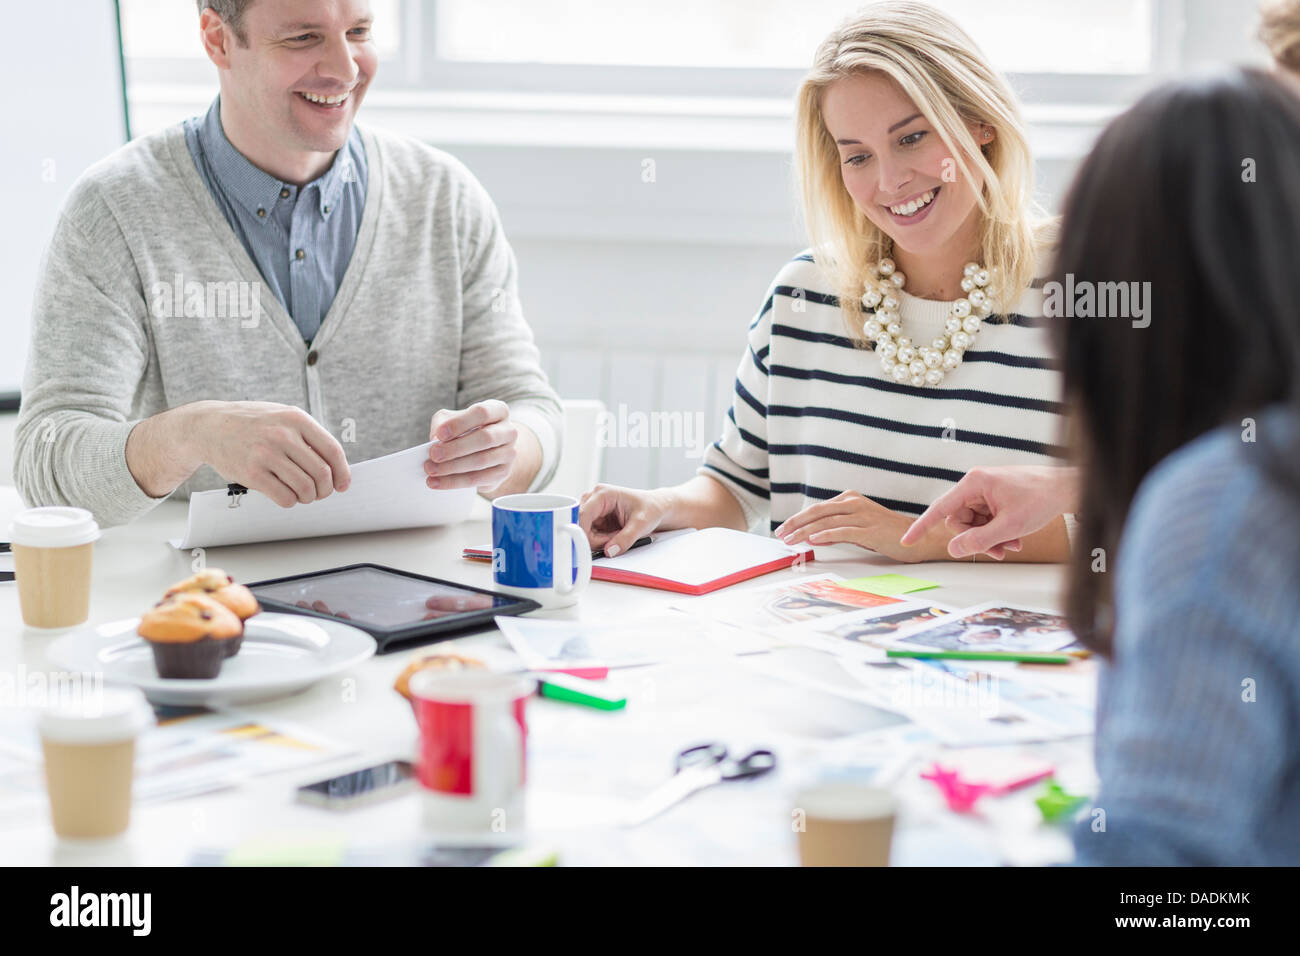 Creative team discussing plans in office meeting - Stock Image